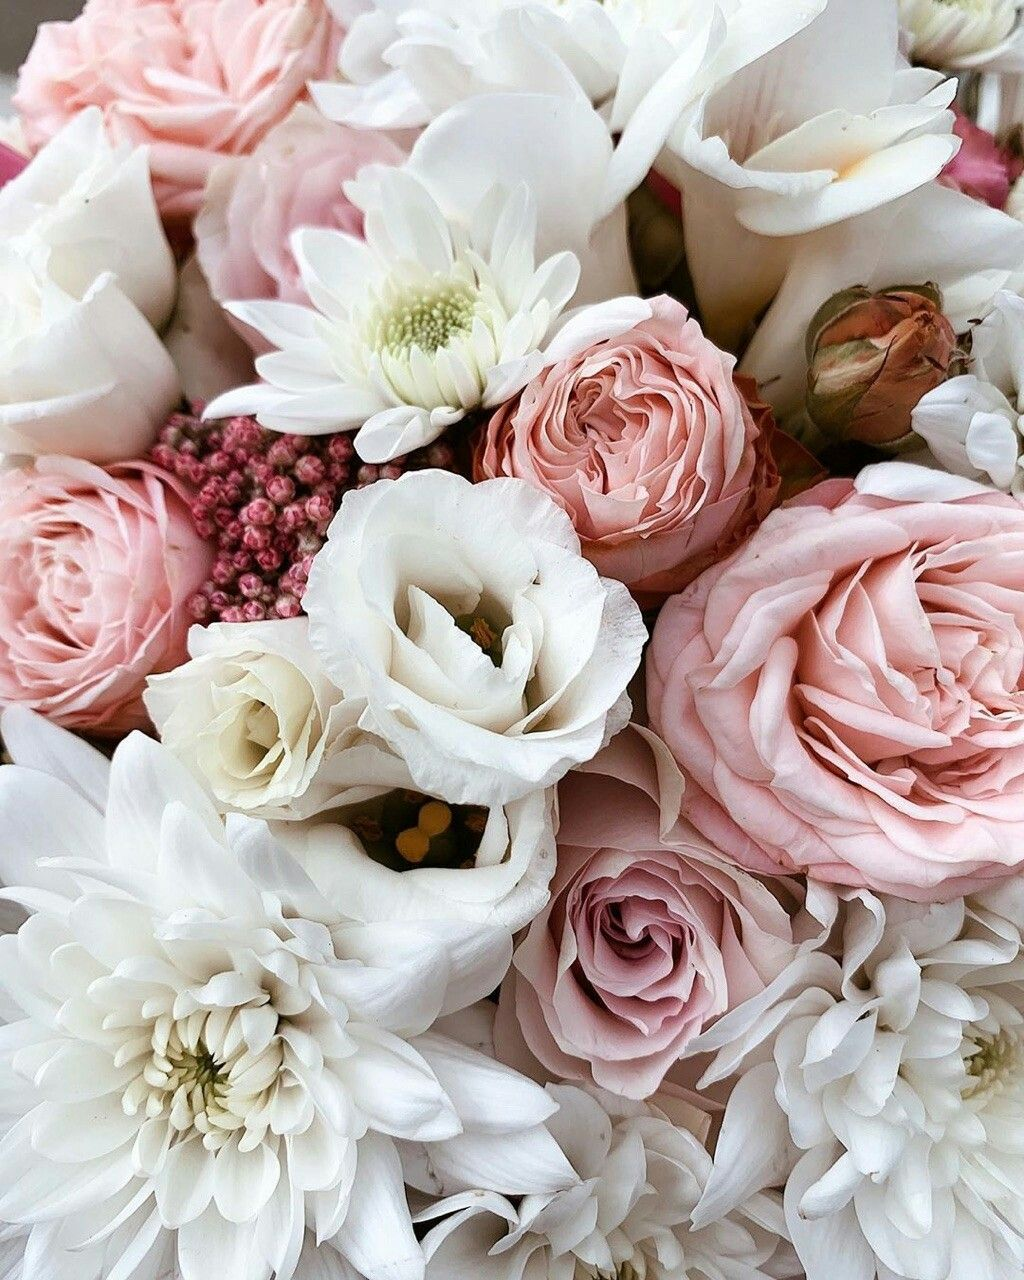 Pin By Dominique Condut On Flowers Beautiful Flowers Flowers White Roses